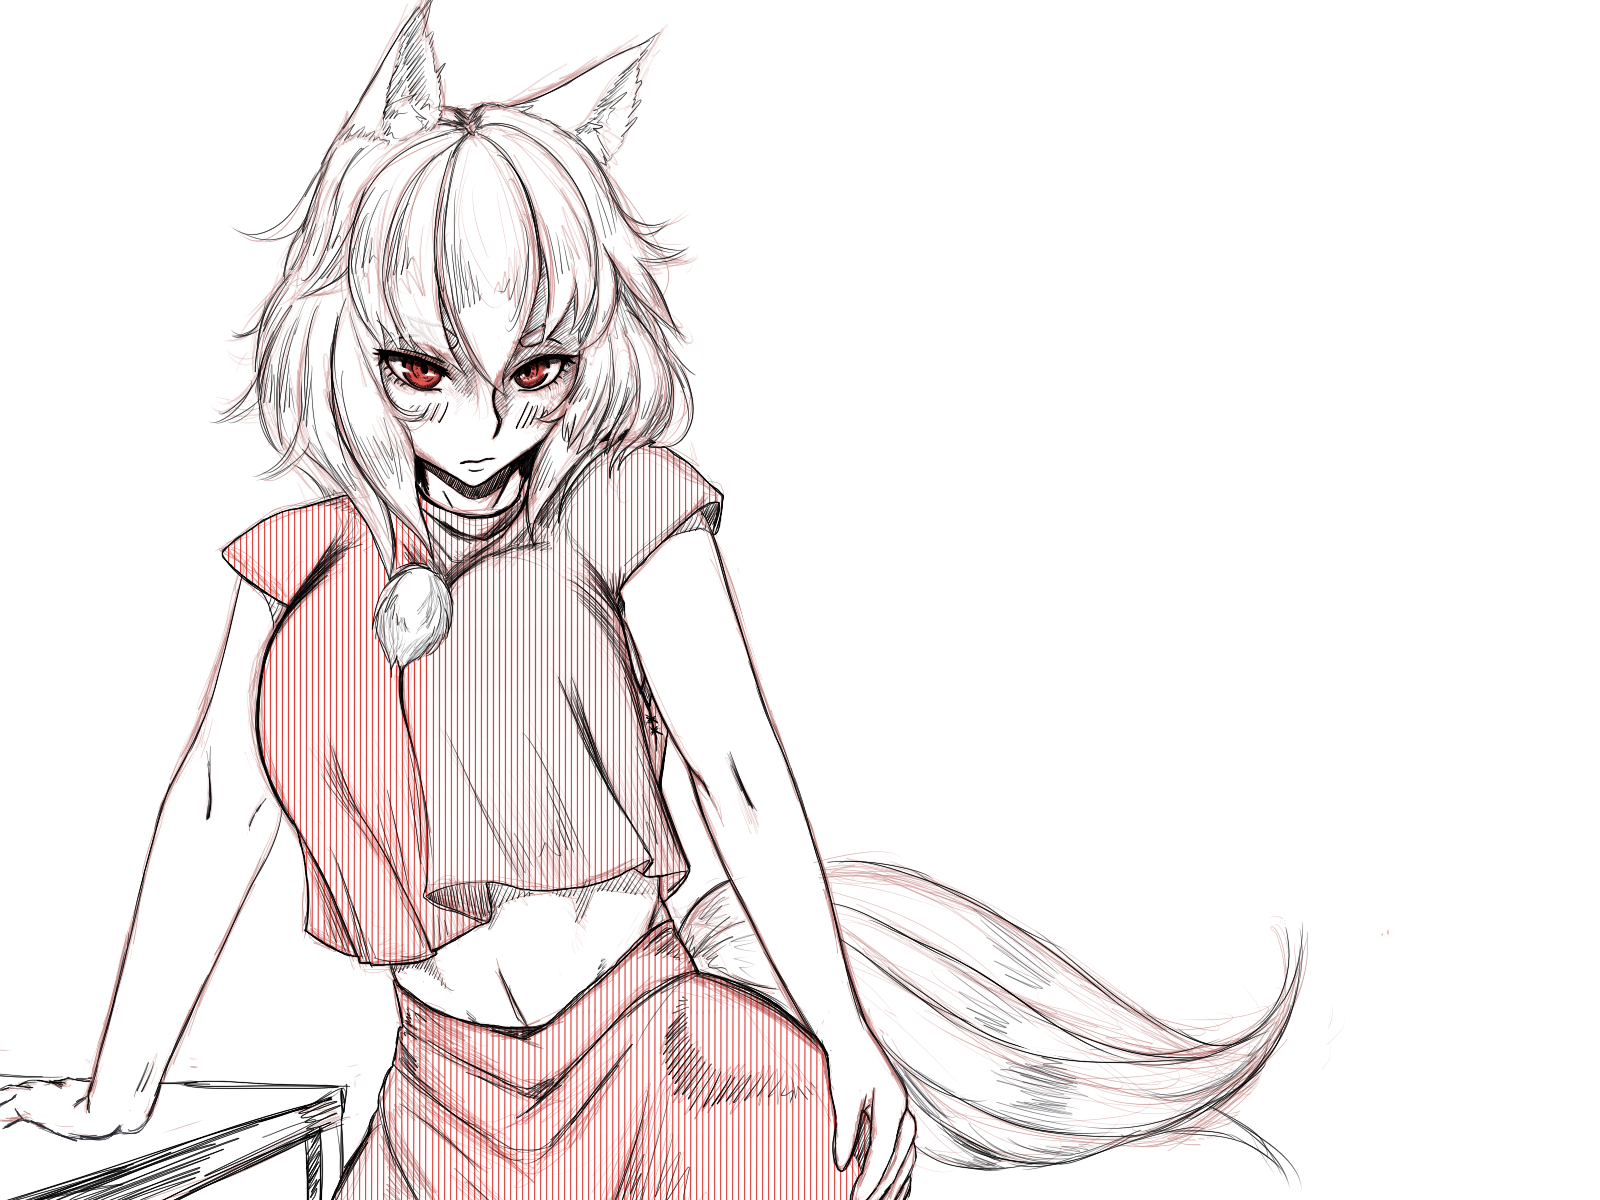 Drawn haven : drawn I awoo haven't